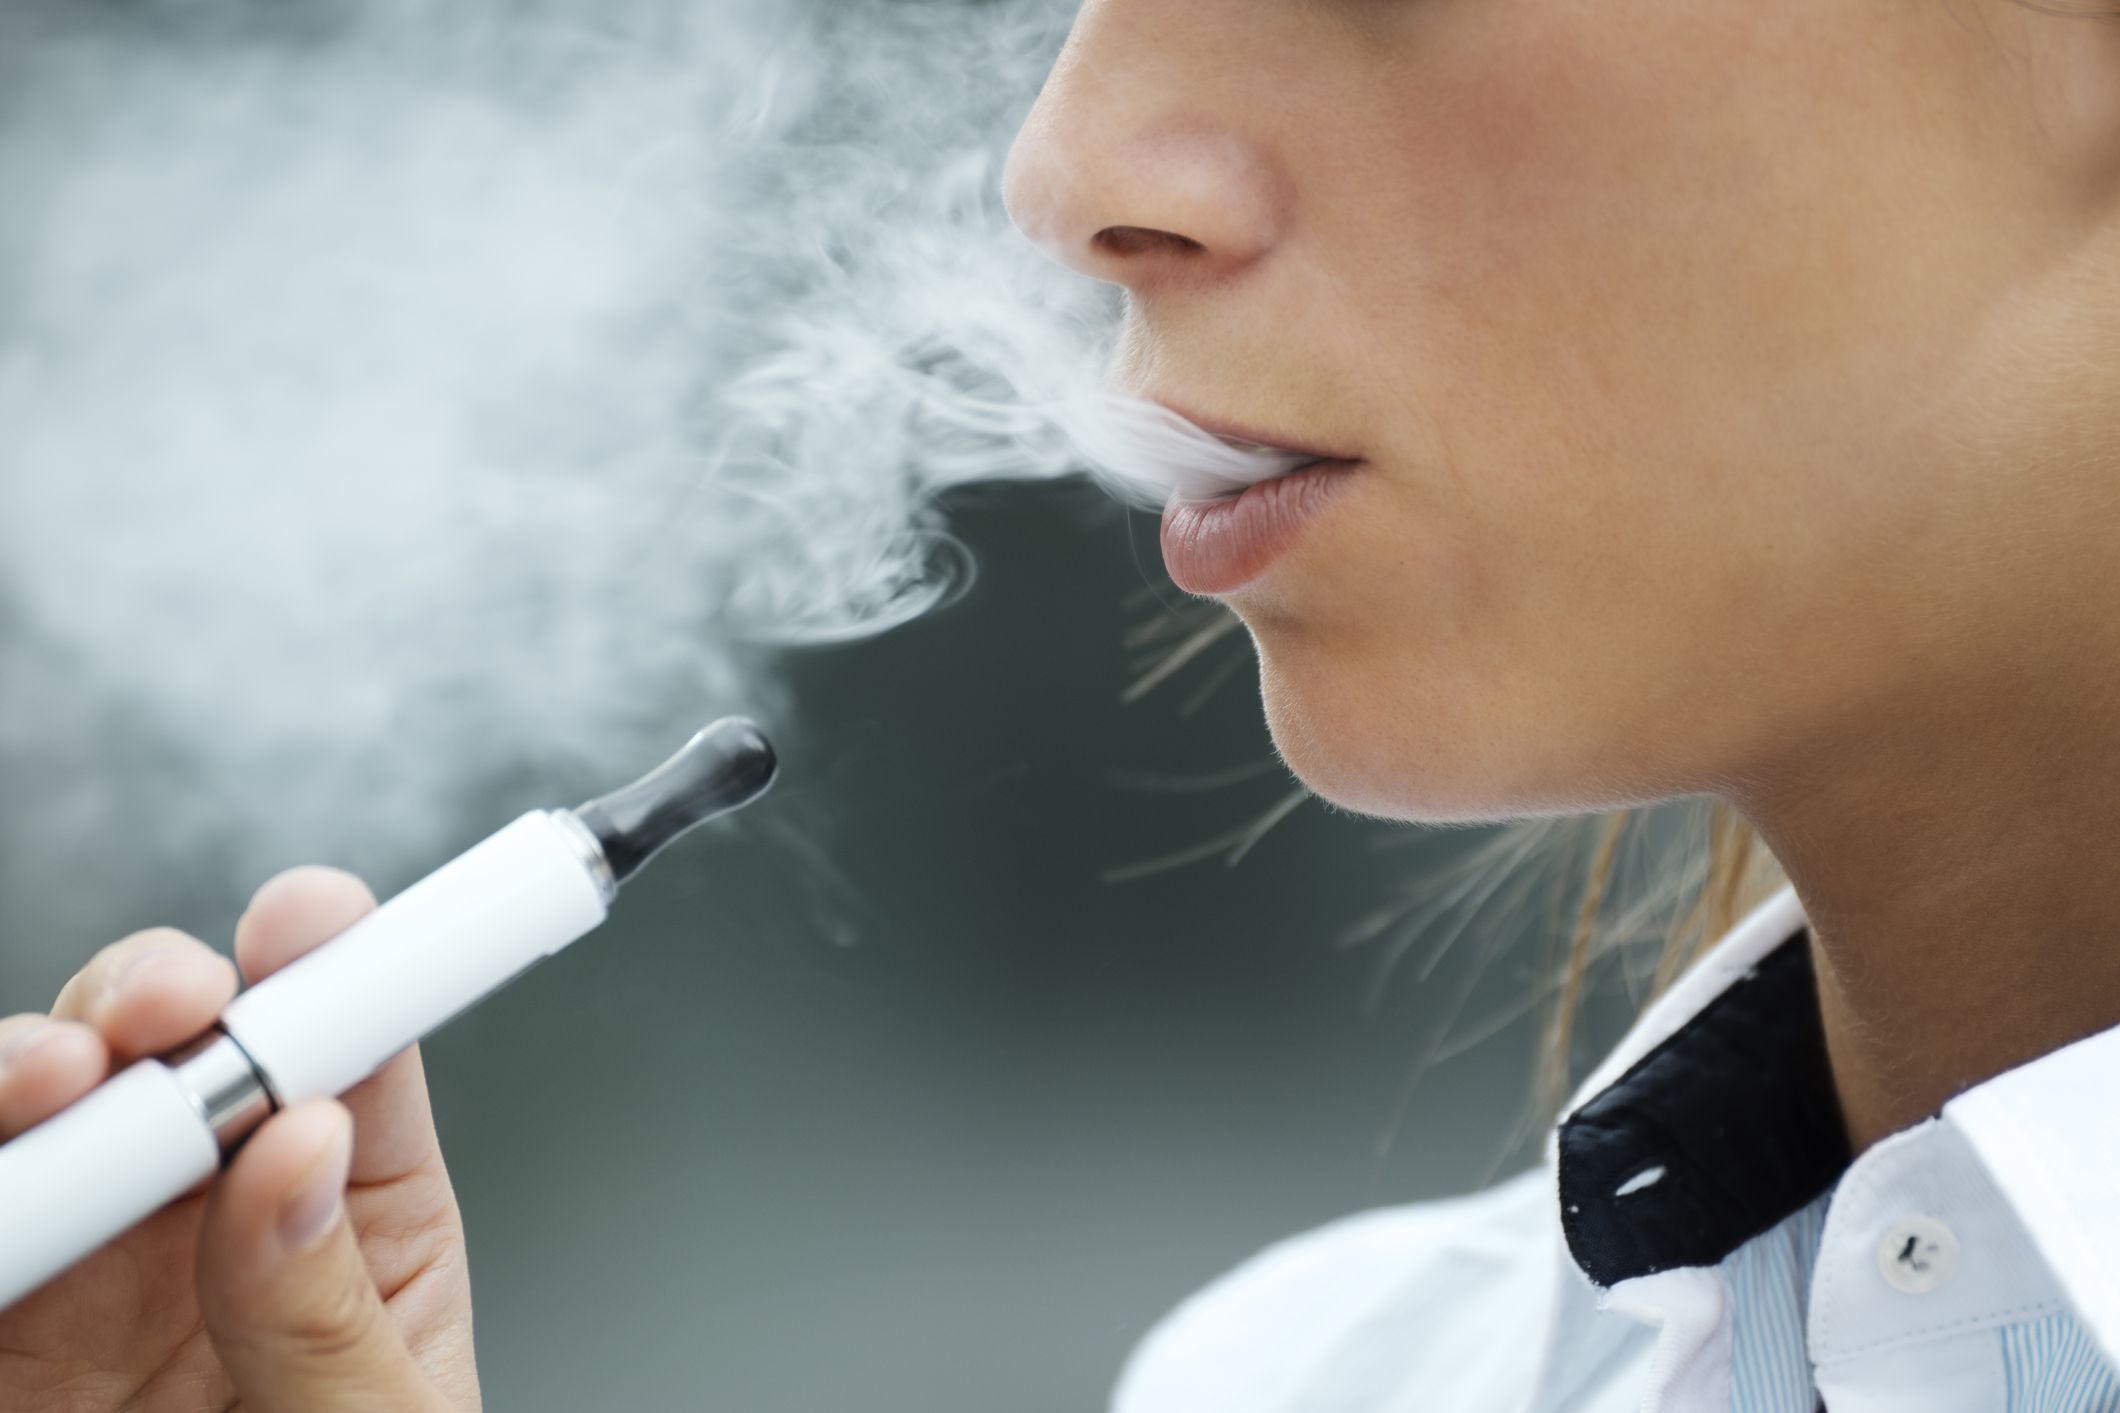 What Is EVALI? Symptoms of Vaping-Related Lung Illness May Feel Like the Flu